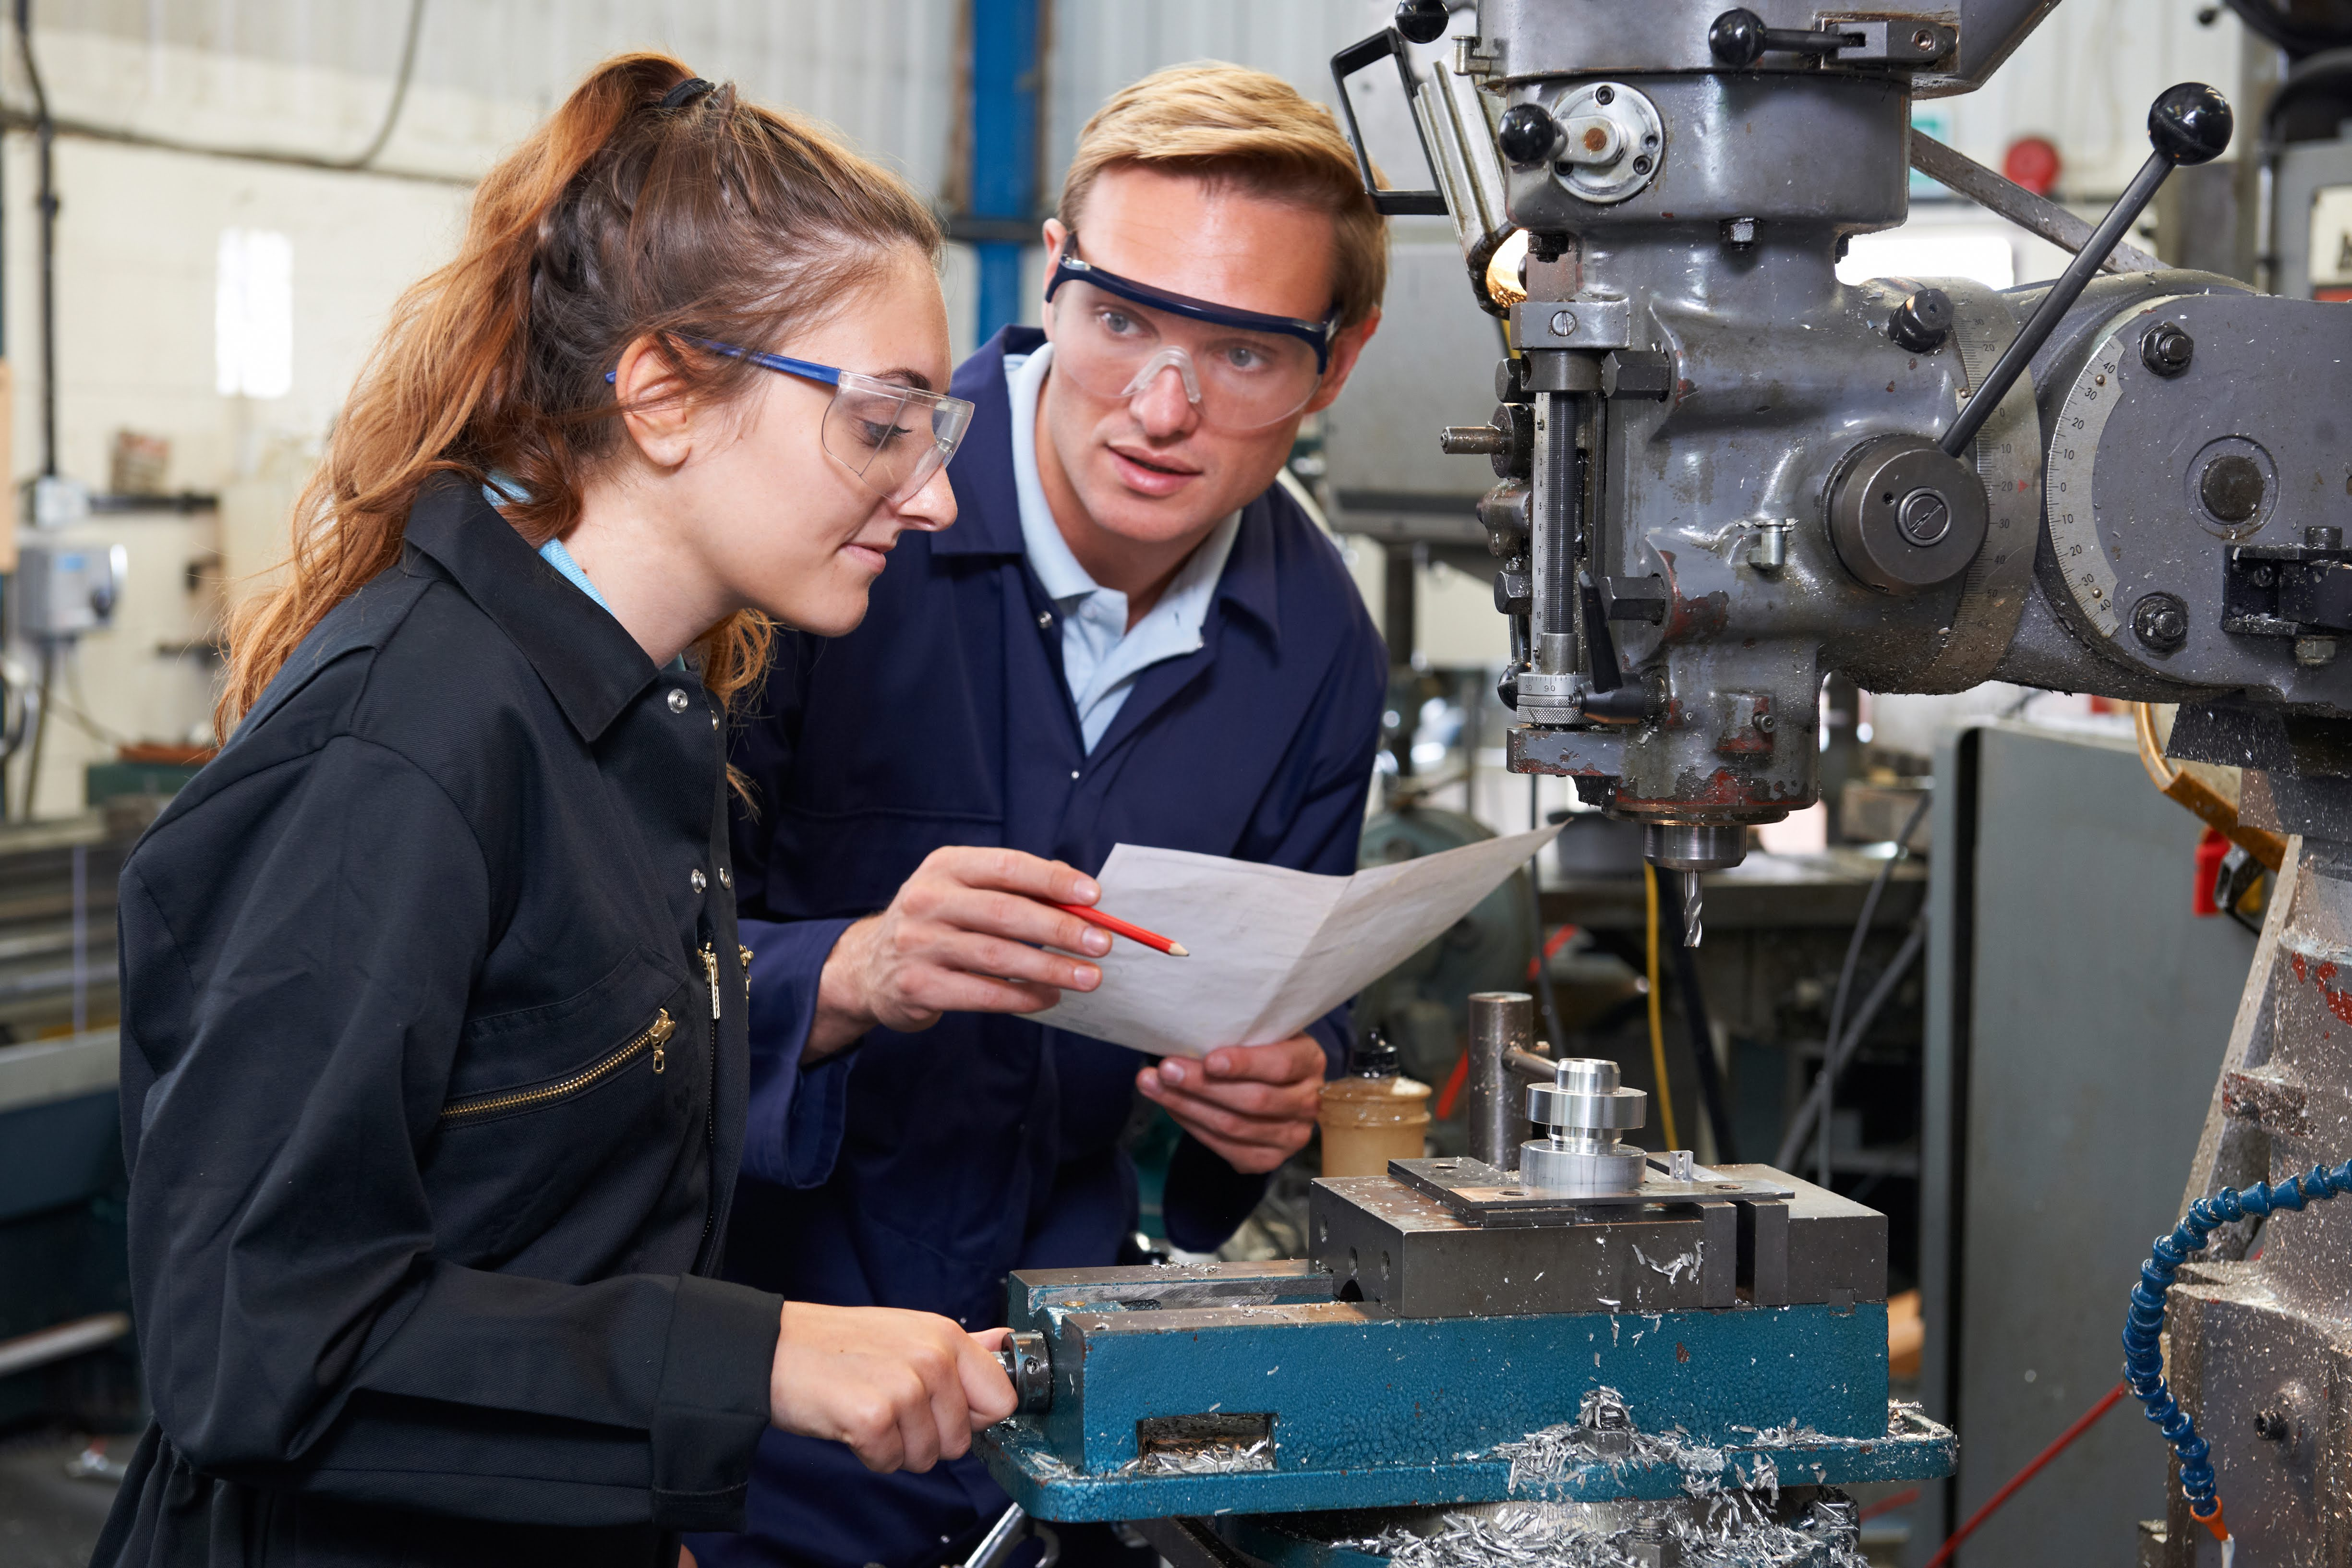 What are the benefits of utilizing prescription safety glasses in different fields of work?